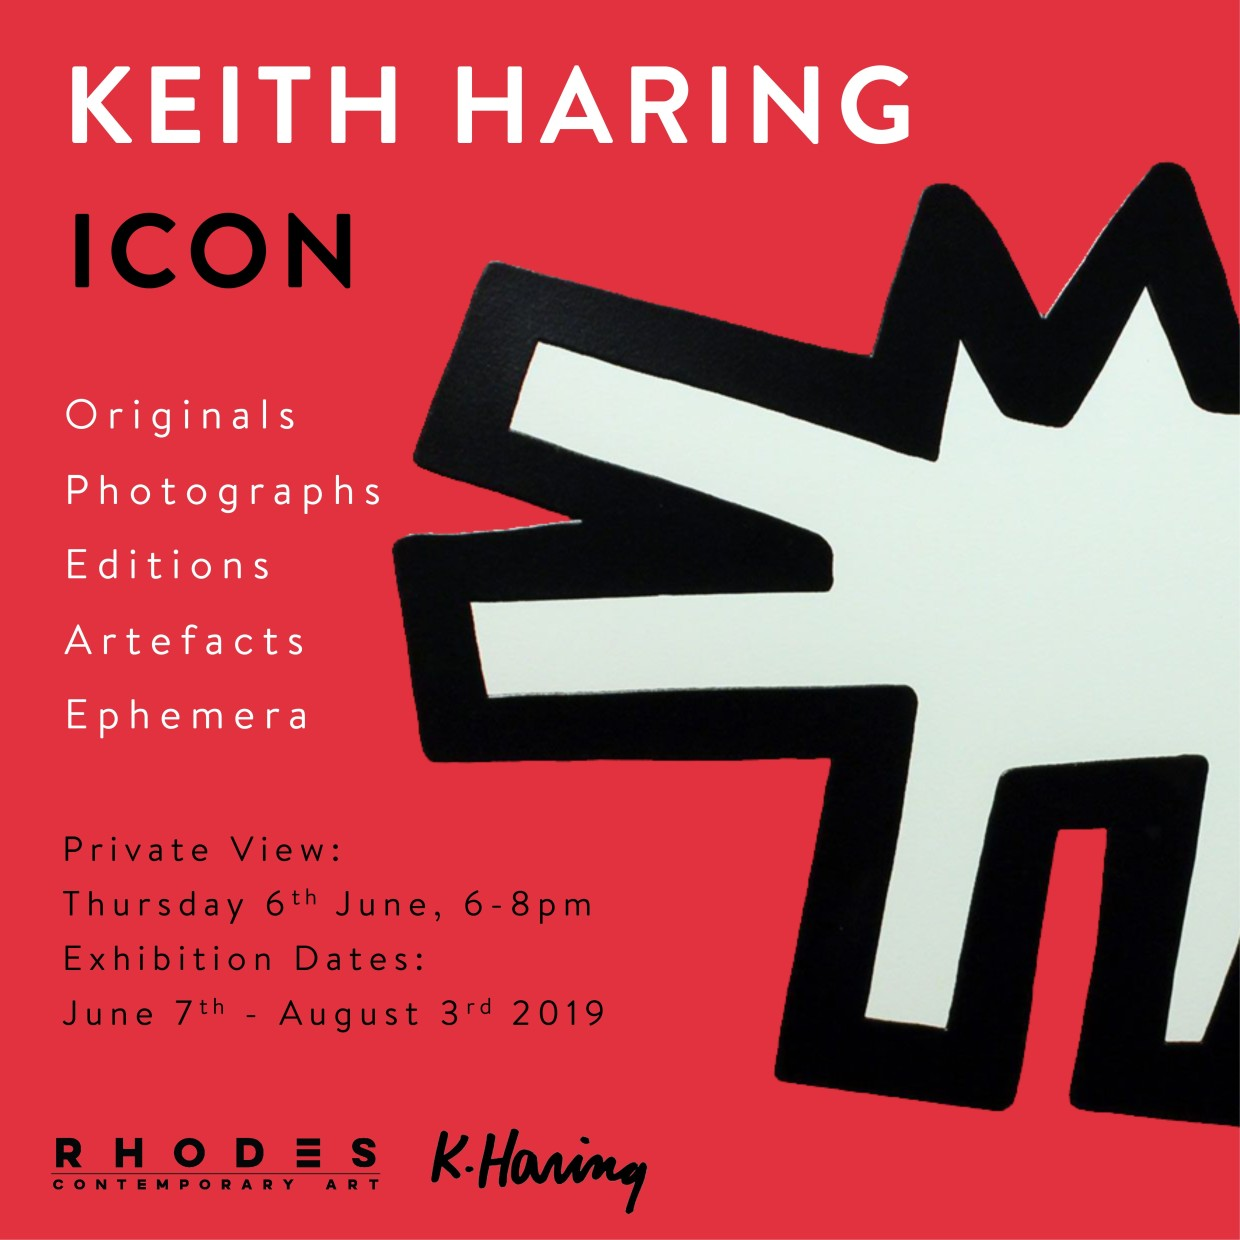 Keith Haring: ICON